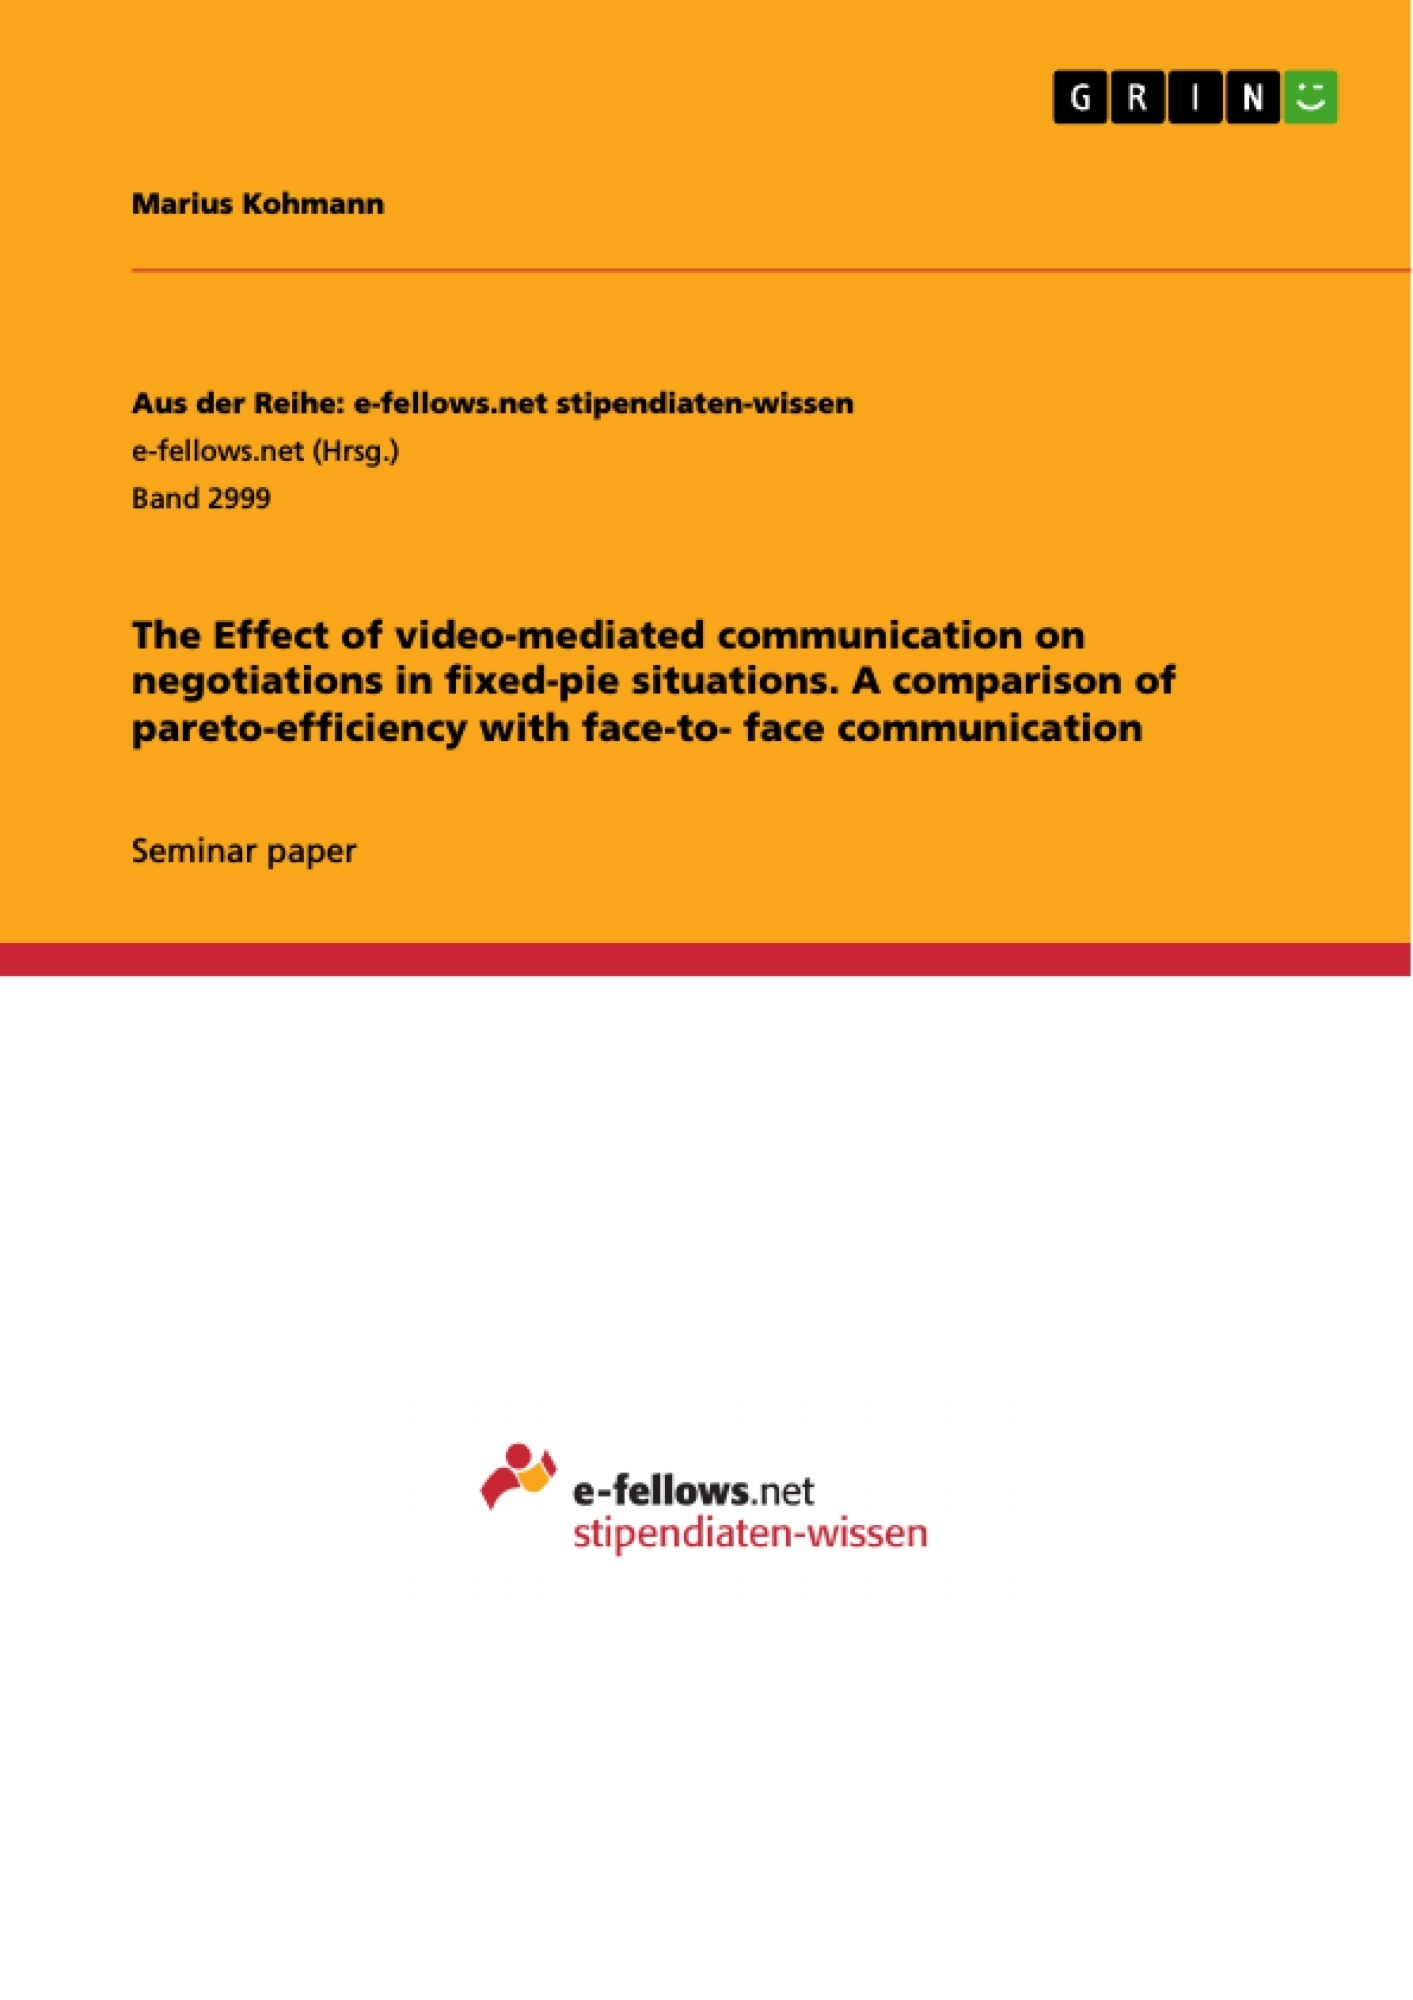 Title: The Effect of video-mediated communication on negotiations in fixed-pie situations. A comparison of pareto-efficiency with face-to- face communication